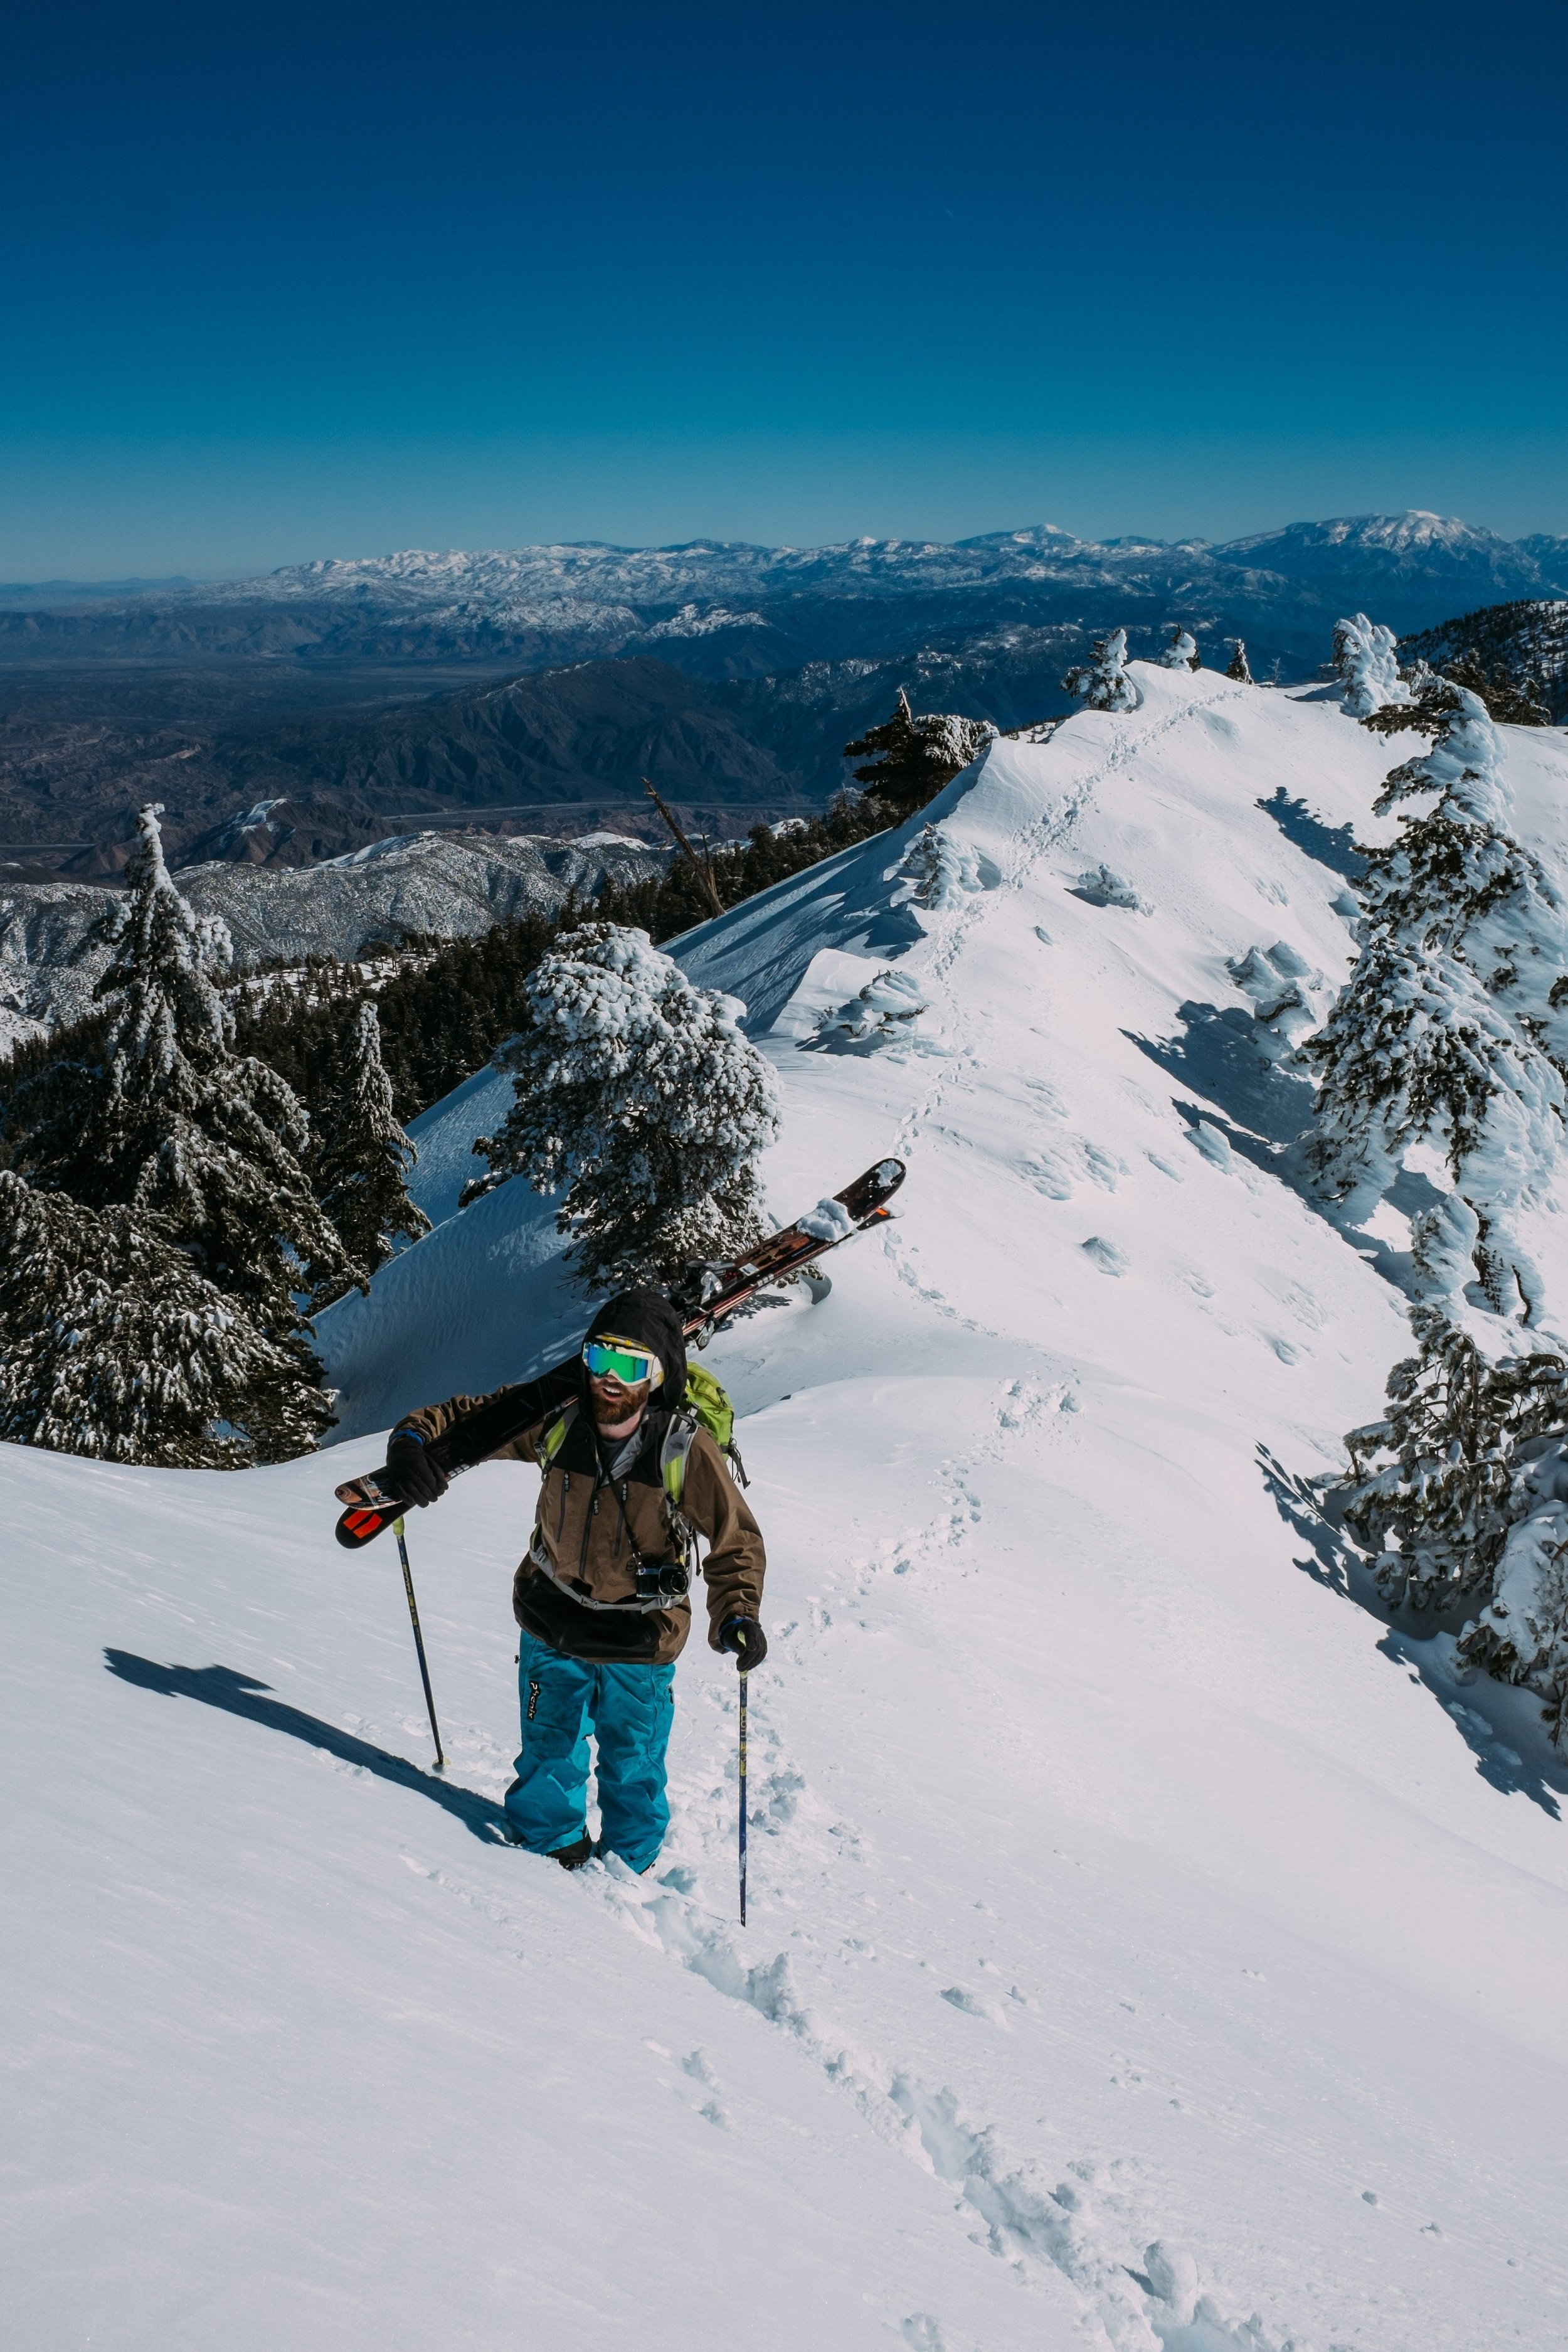 backcountry skiing - Monarch Mountain and the surrounding areas offer some spectacular backcountry skiing. Ask the local experts for their recommendations on some amazing, untouched backcountry skiing opportunities.